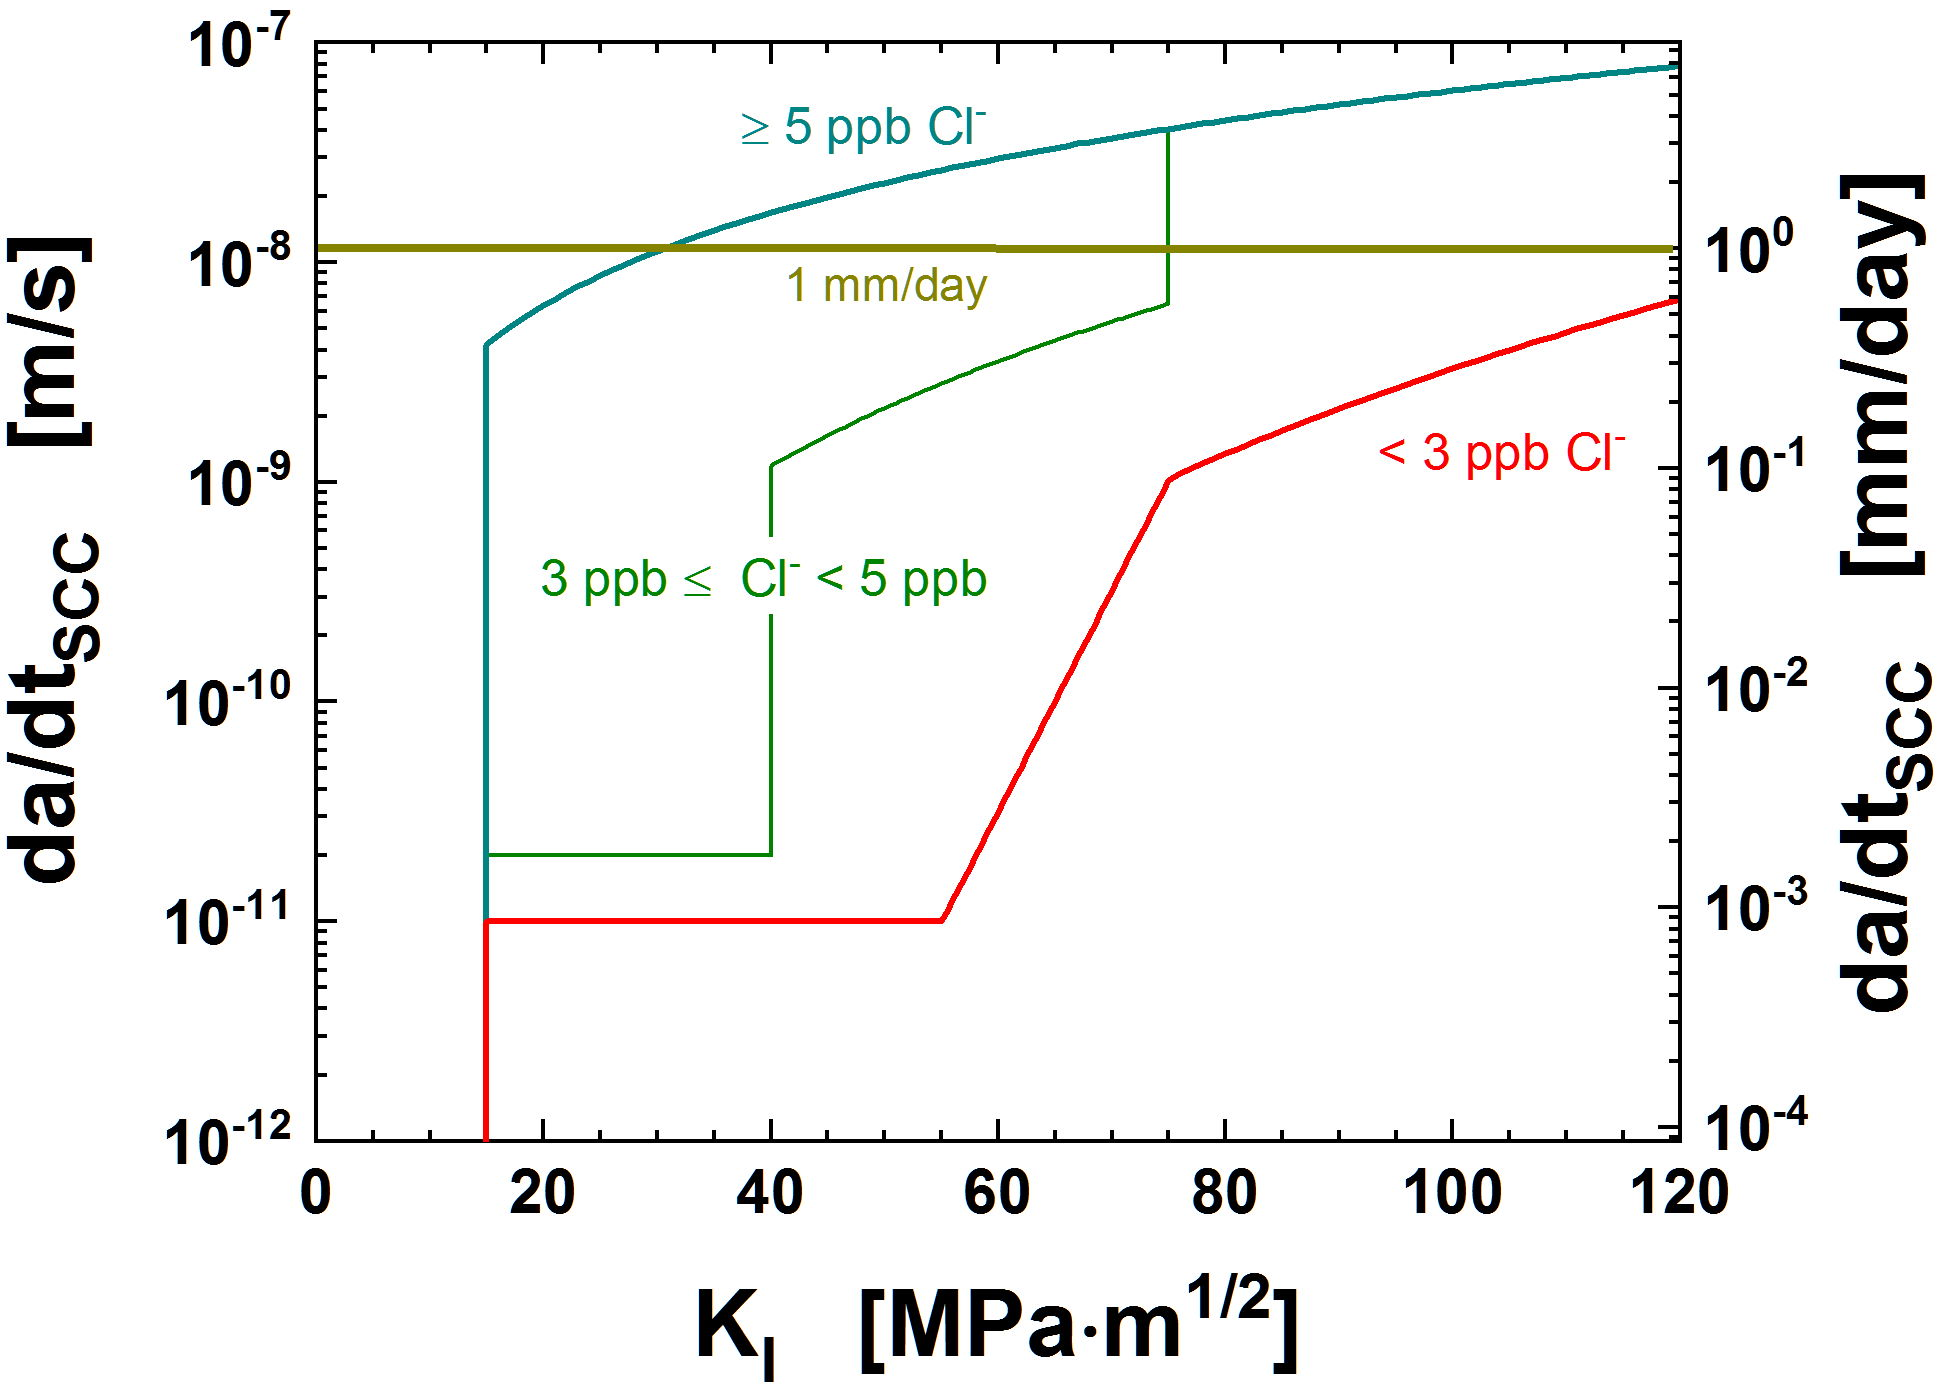 Fig. 5: ASME BPV Code Case N-896 SCC disposition curves for RPV steels during chloride transients in BWR/NWC environment [5]. (© ASME)